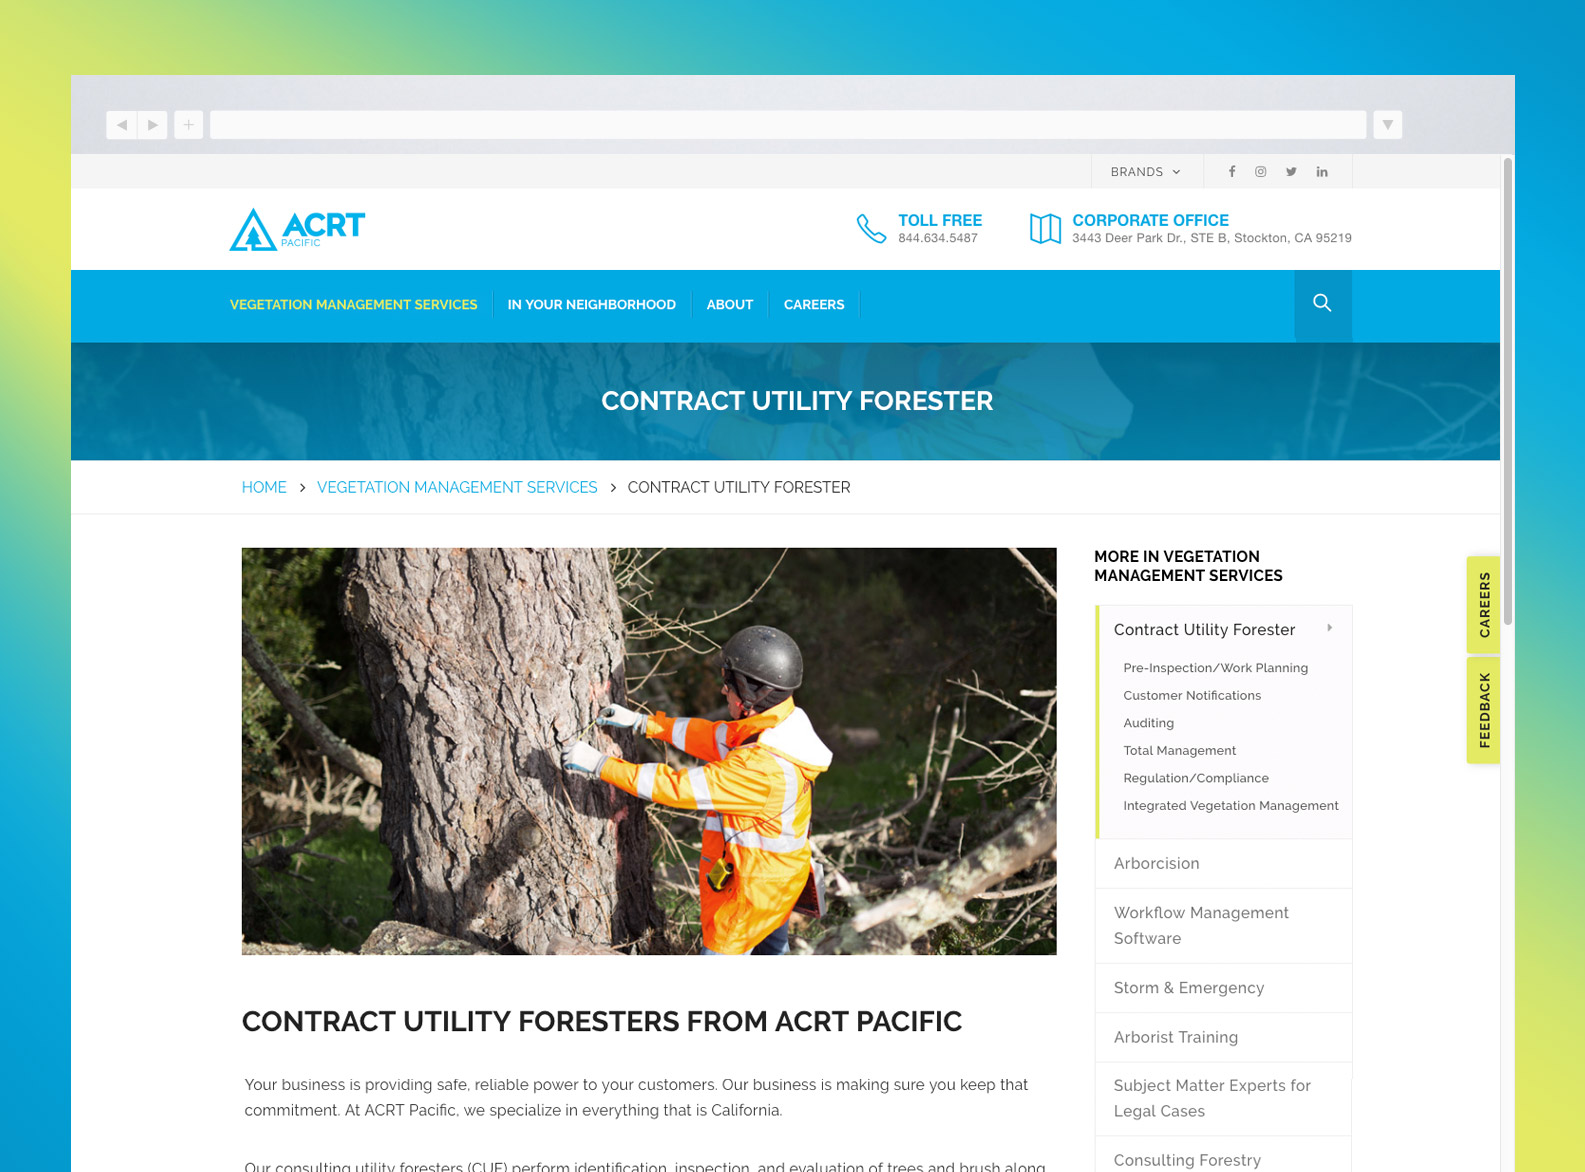 ACRT Pacific Website Services Detail